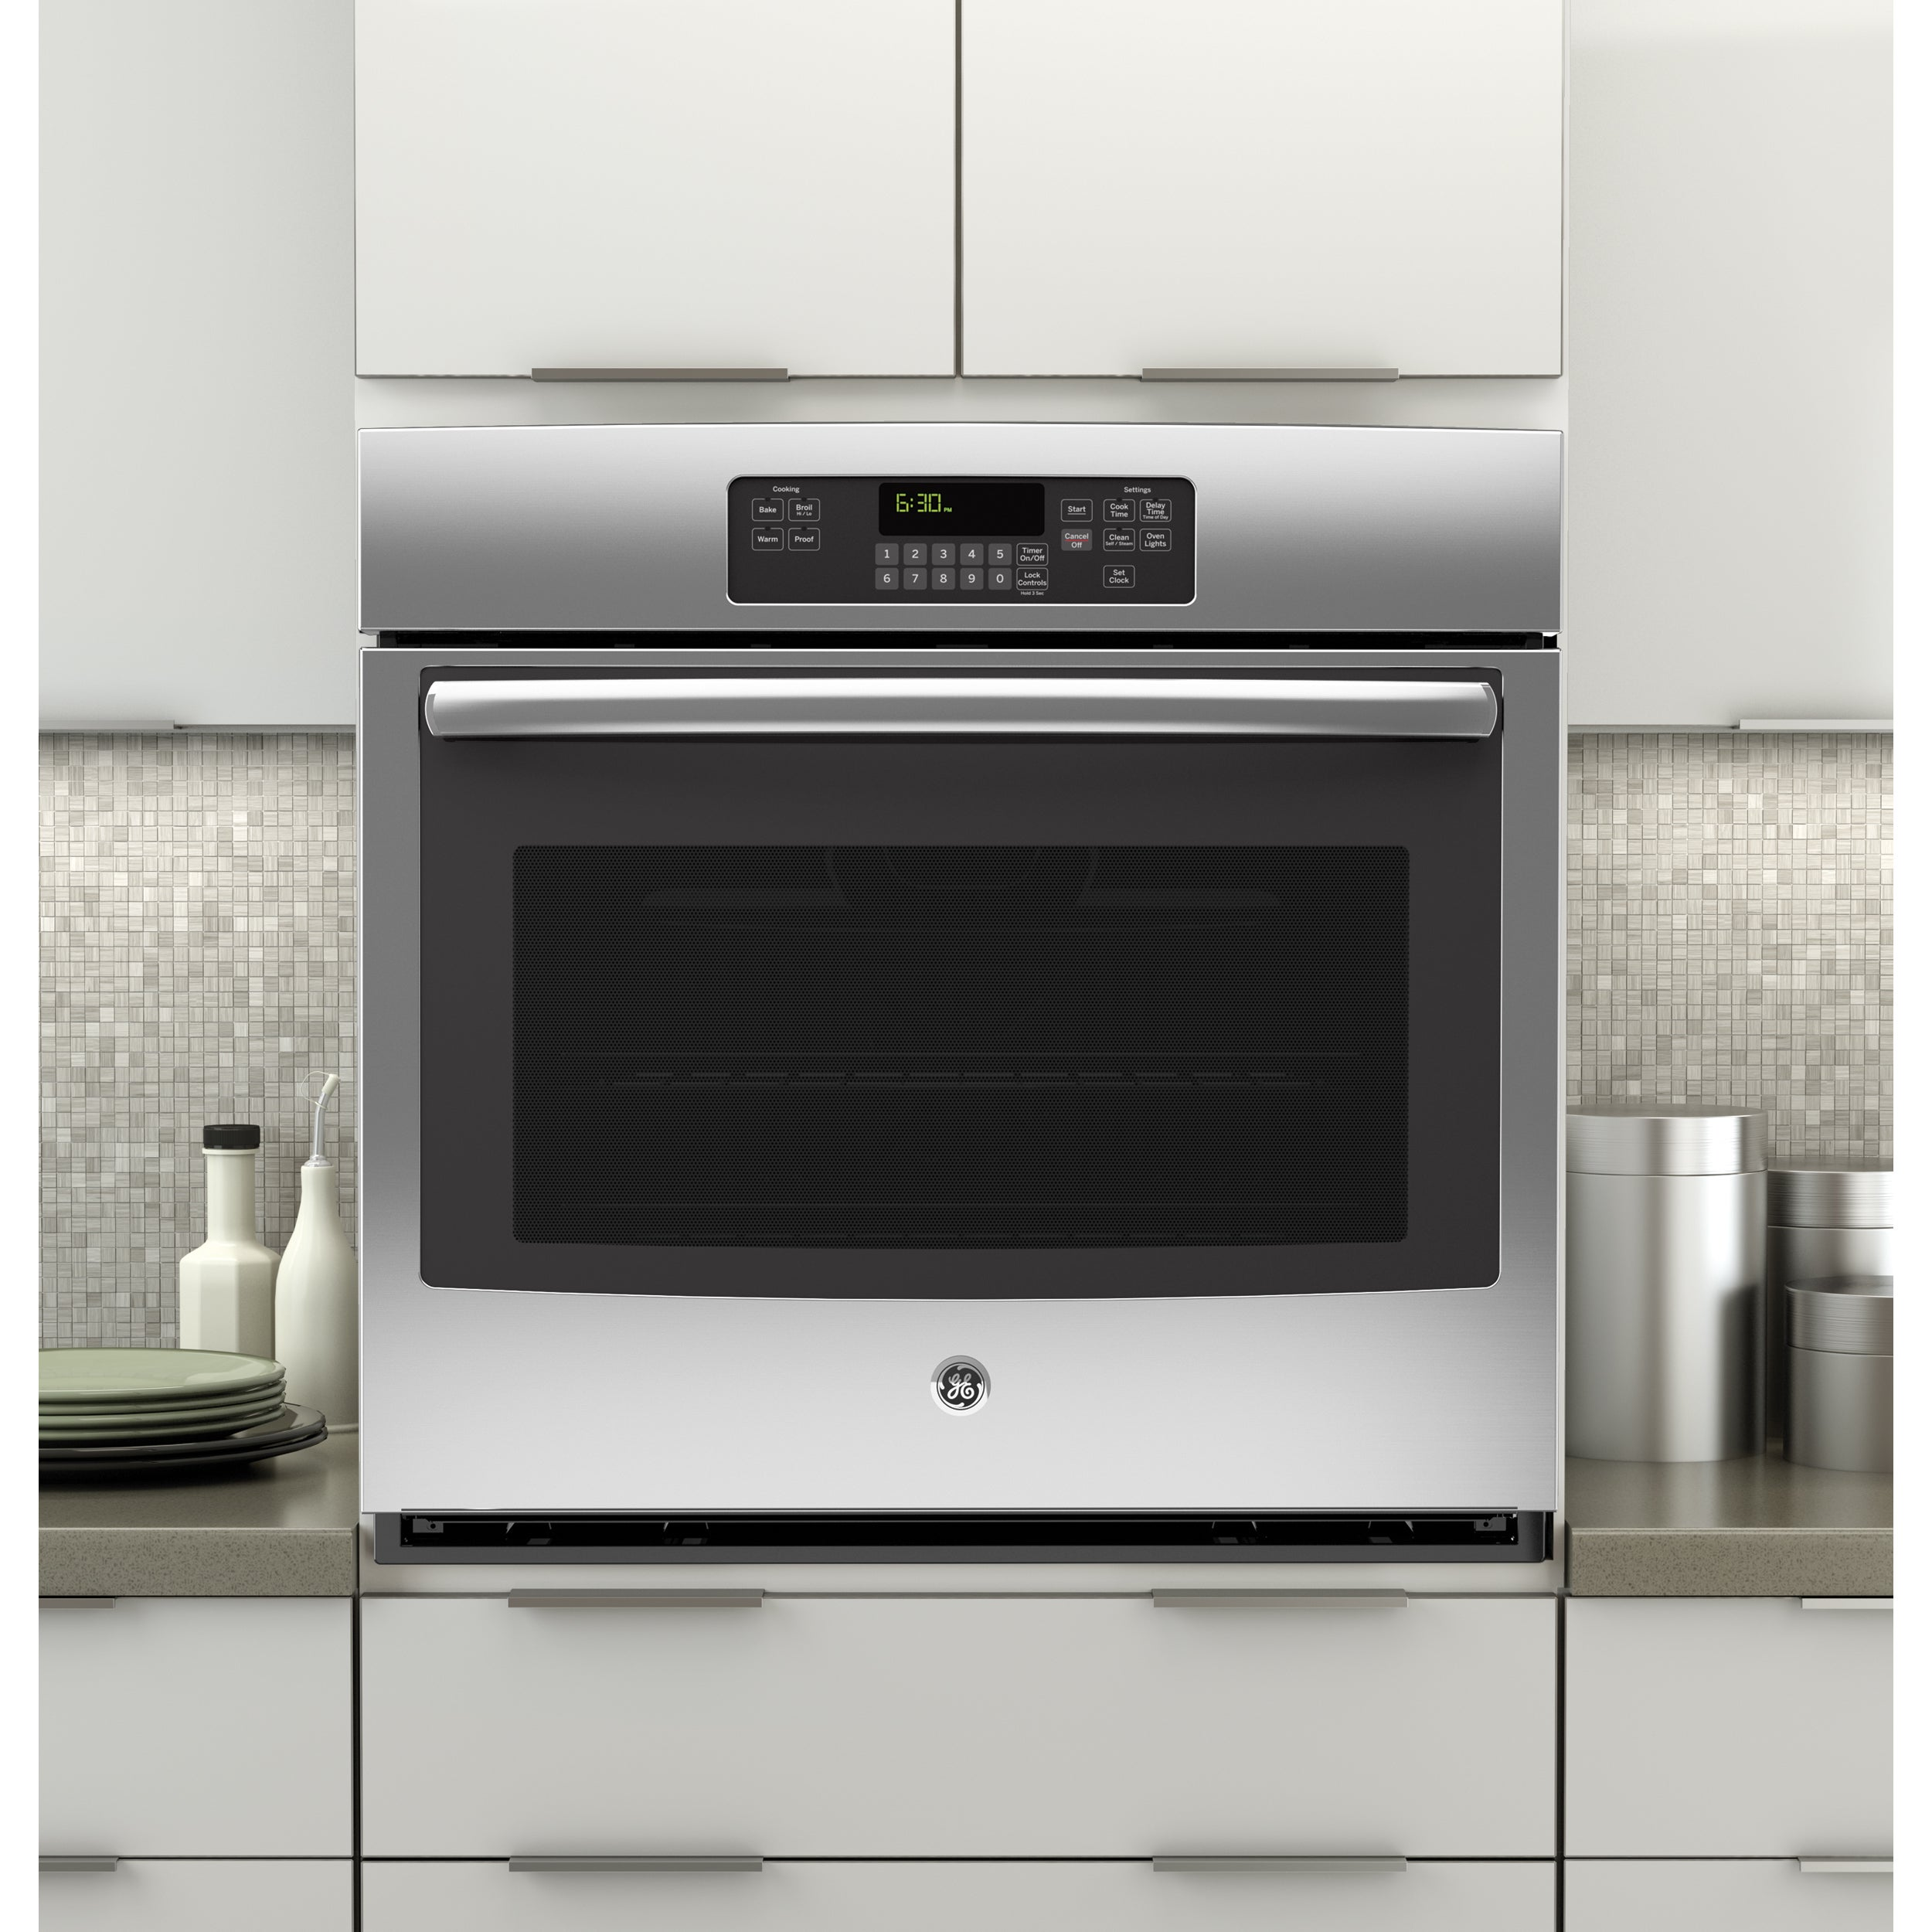 GE 30-inch Built-in Single Wall Oven (Black) (Stainless S...